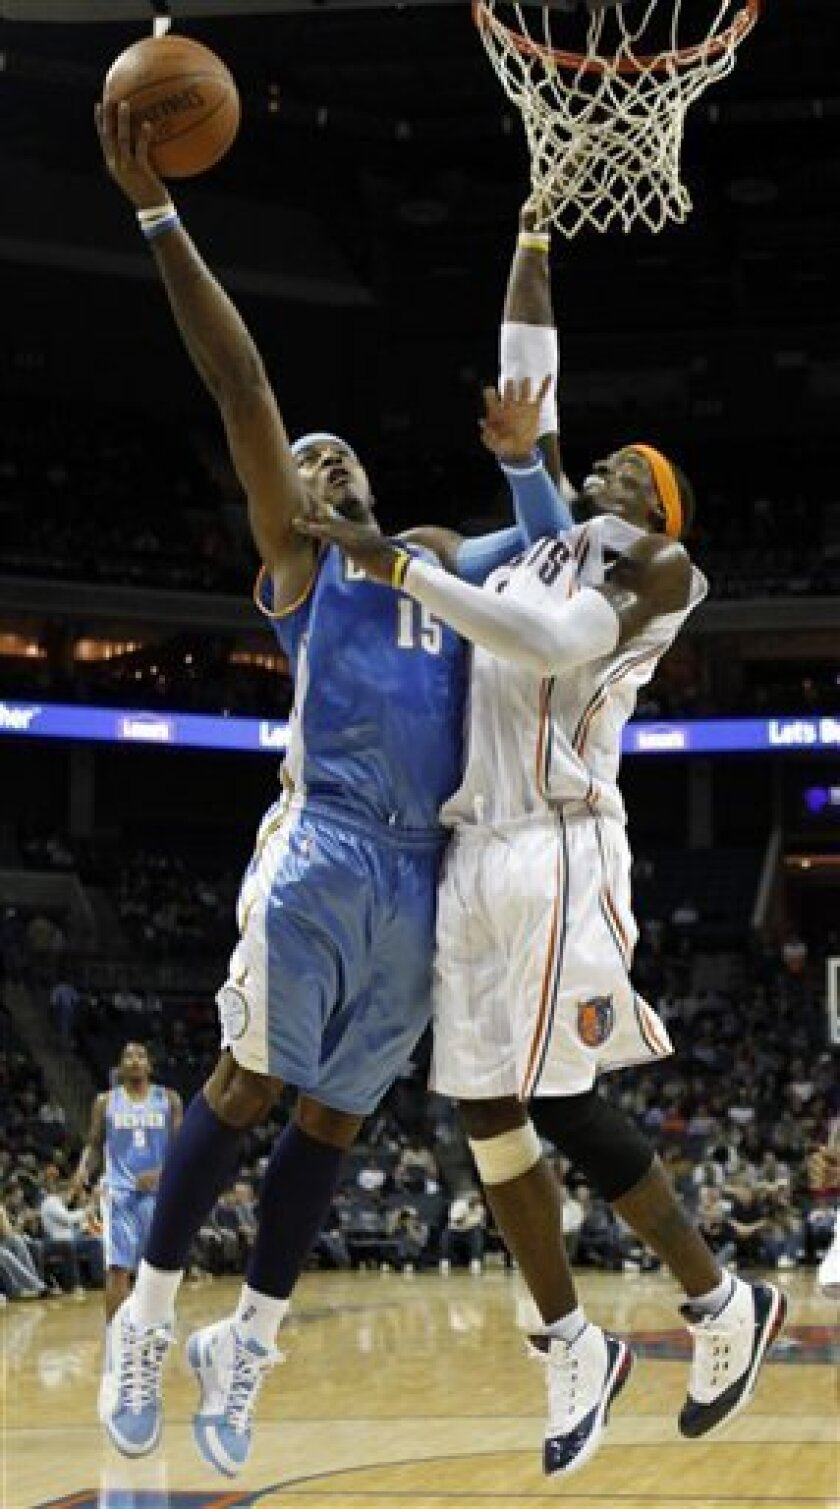 Denver Nuggets' Carmelo Anthony (15) shoots over Charlotte Bobcats' Gerald Wallace (3) in the first half of an NBA basketball game in Charlotte, N.C., Tuesday, Dec. 8, 2009. (AP Photo/Chuck Burton)